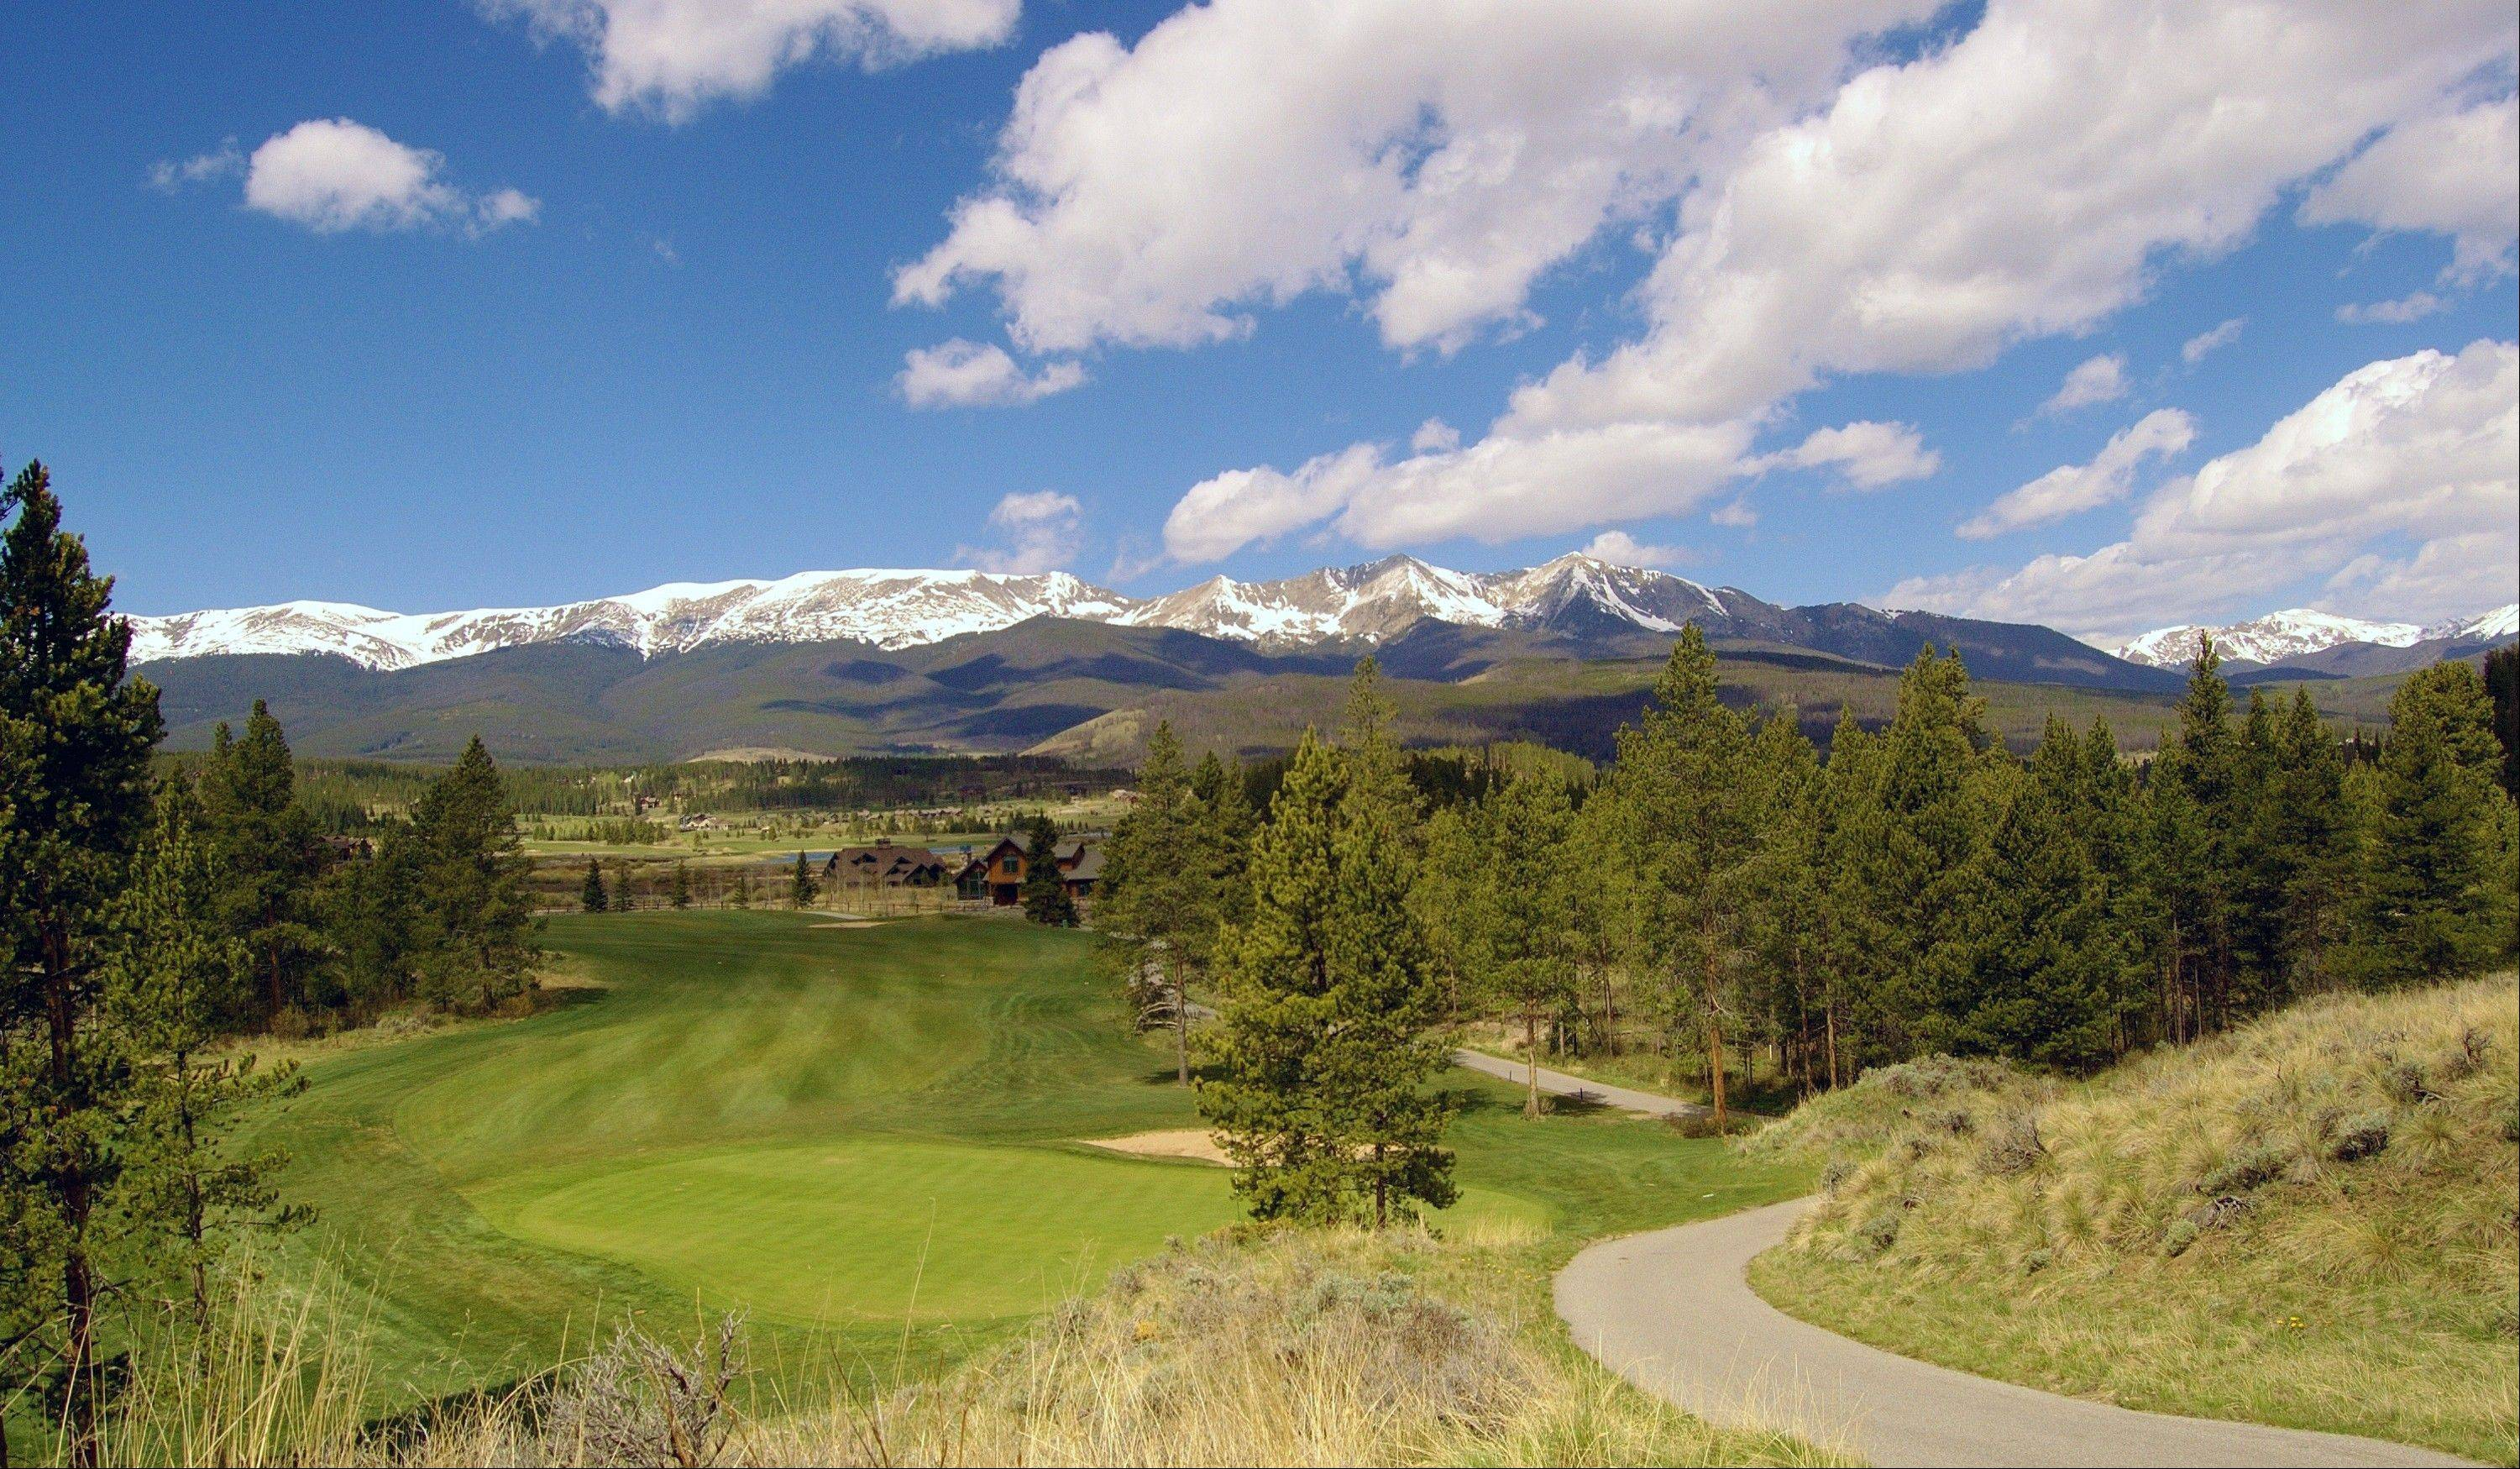 A scenic view of the Breckenridge Golf Club in Breckenridge, Colo.